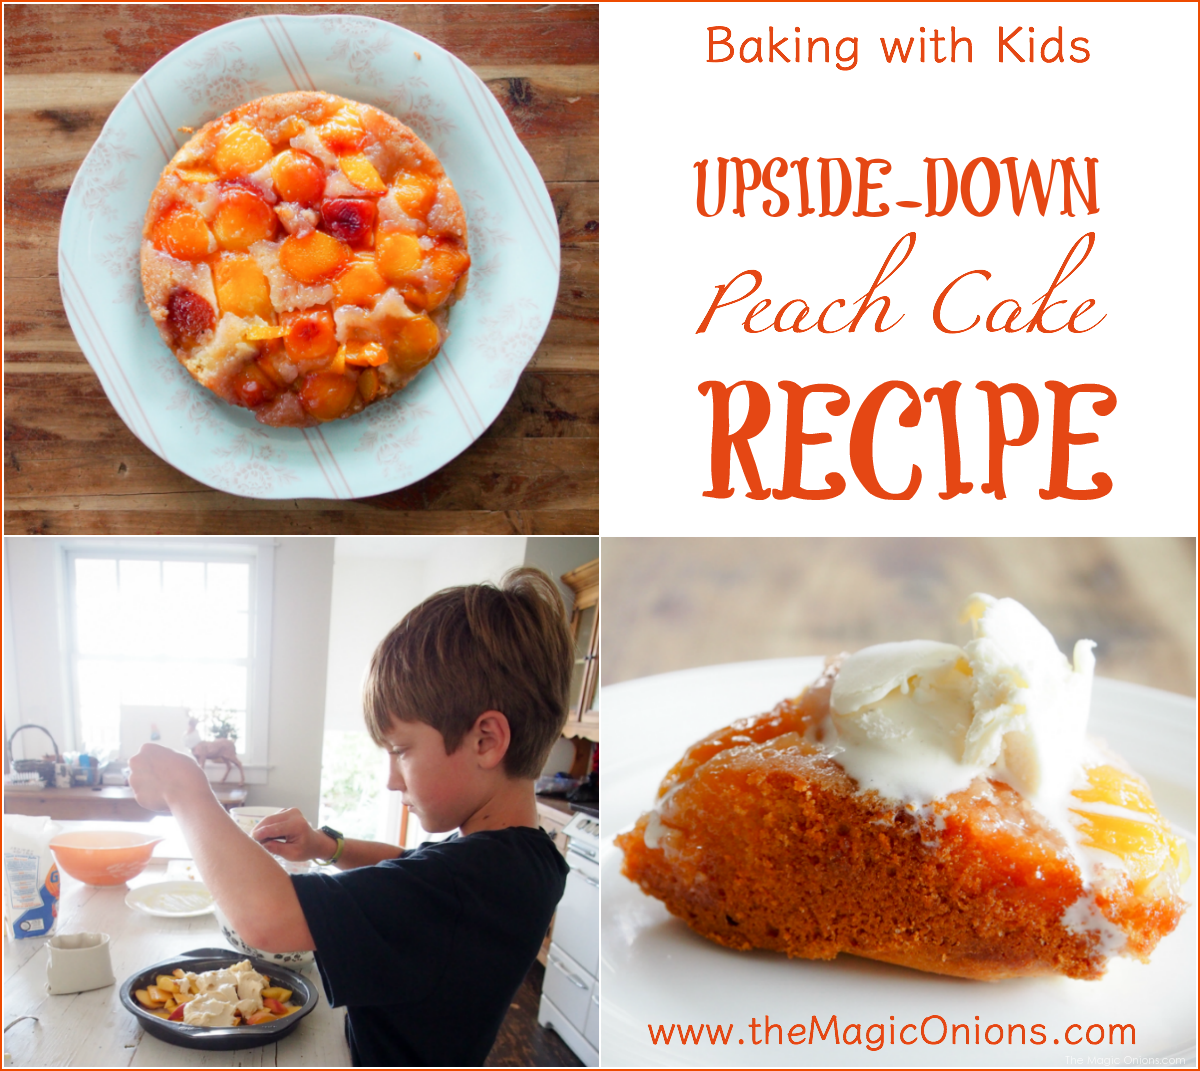 Fresh Cake Recipe with photos of kids baking from The Magic Onions Blog